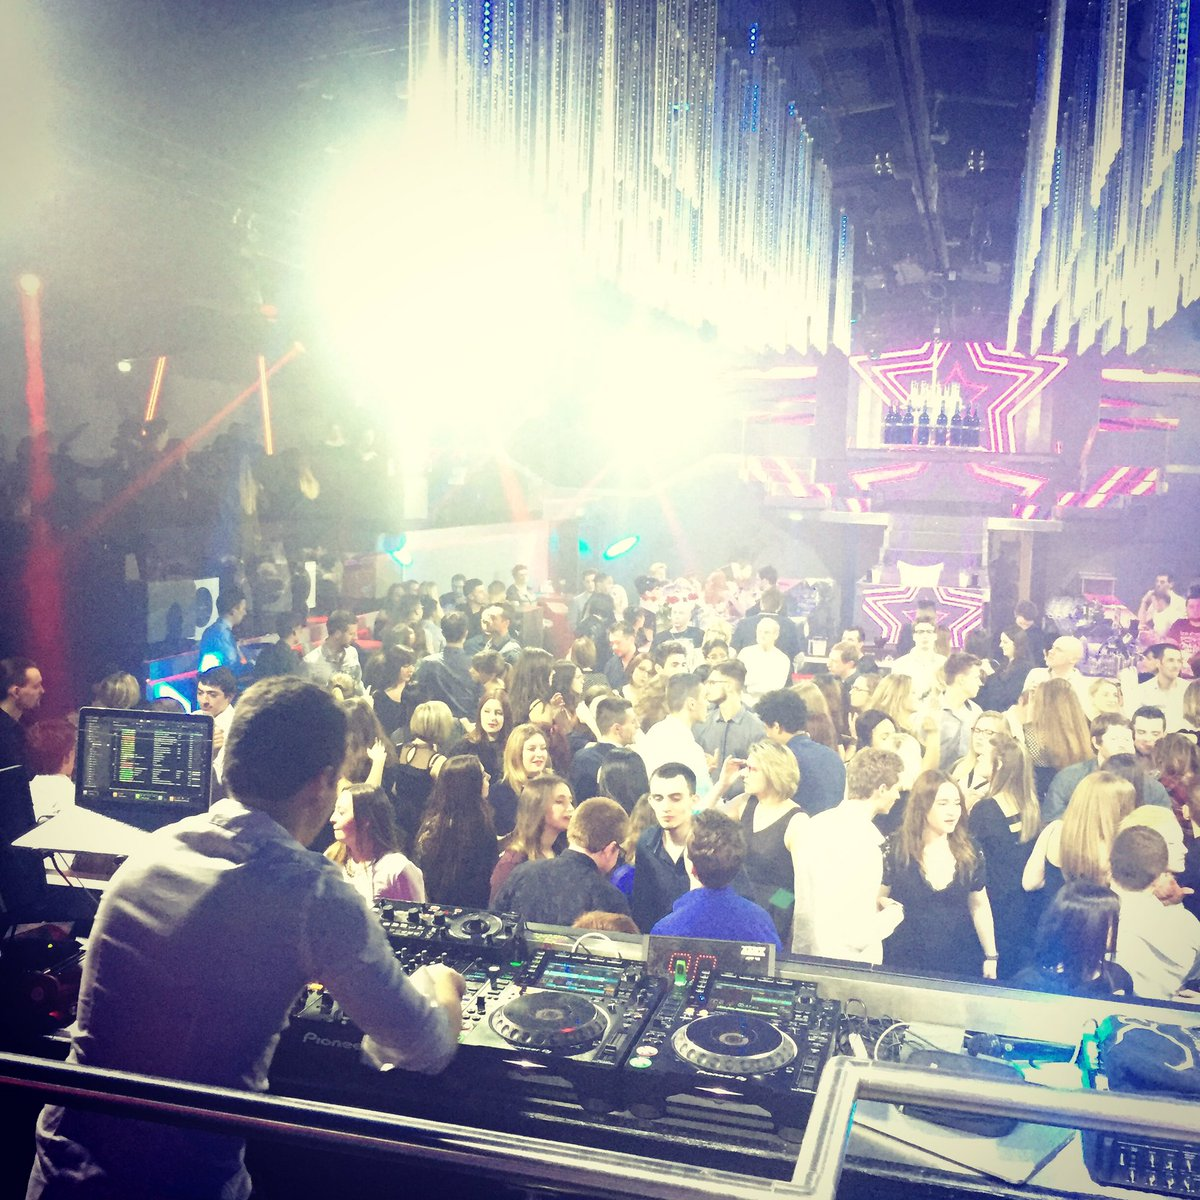 Merci le @SoRouenOfficiel ! #So #Rouen #club #strictlyhousemusic<br>http://pic.twitter.com/Nh2GjGxaIM